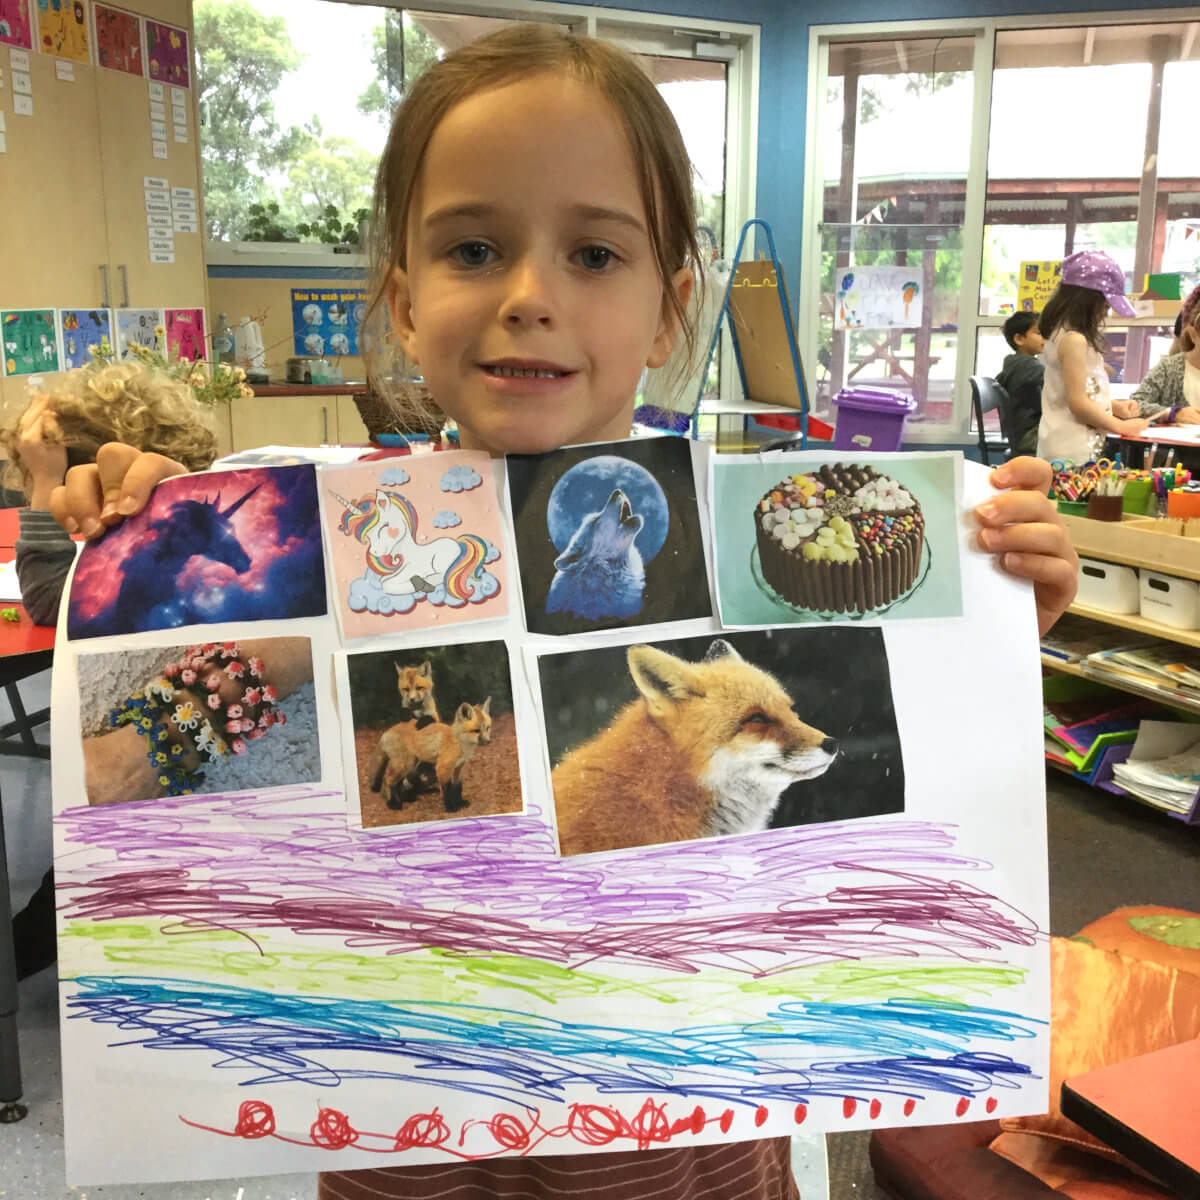 A poster about nature and wild animals